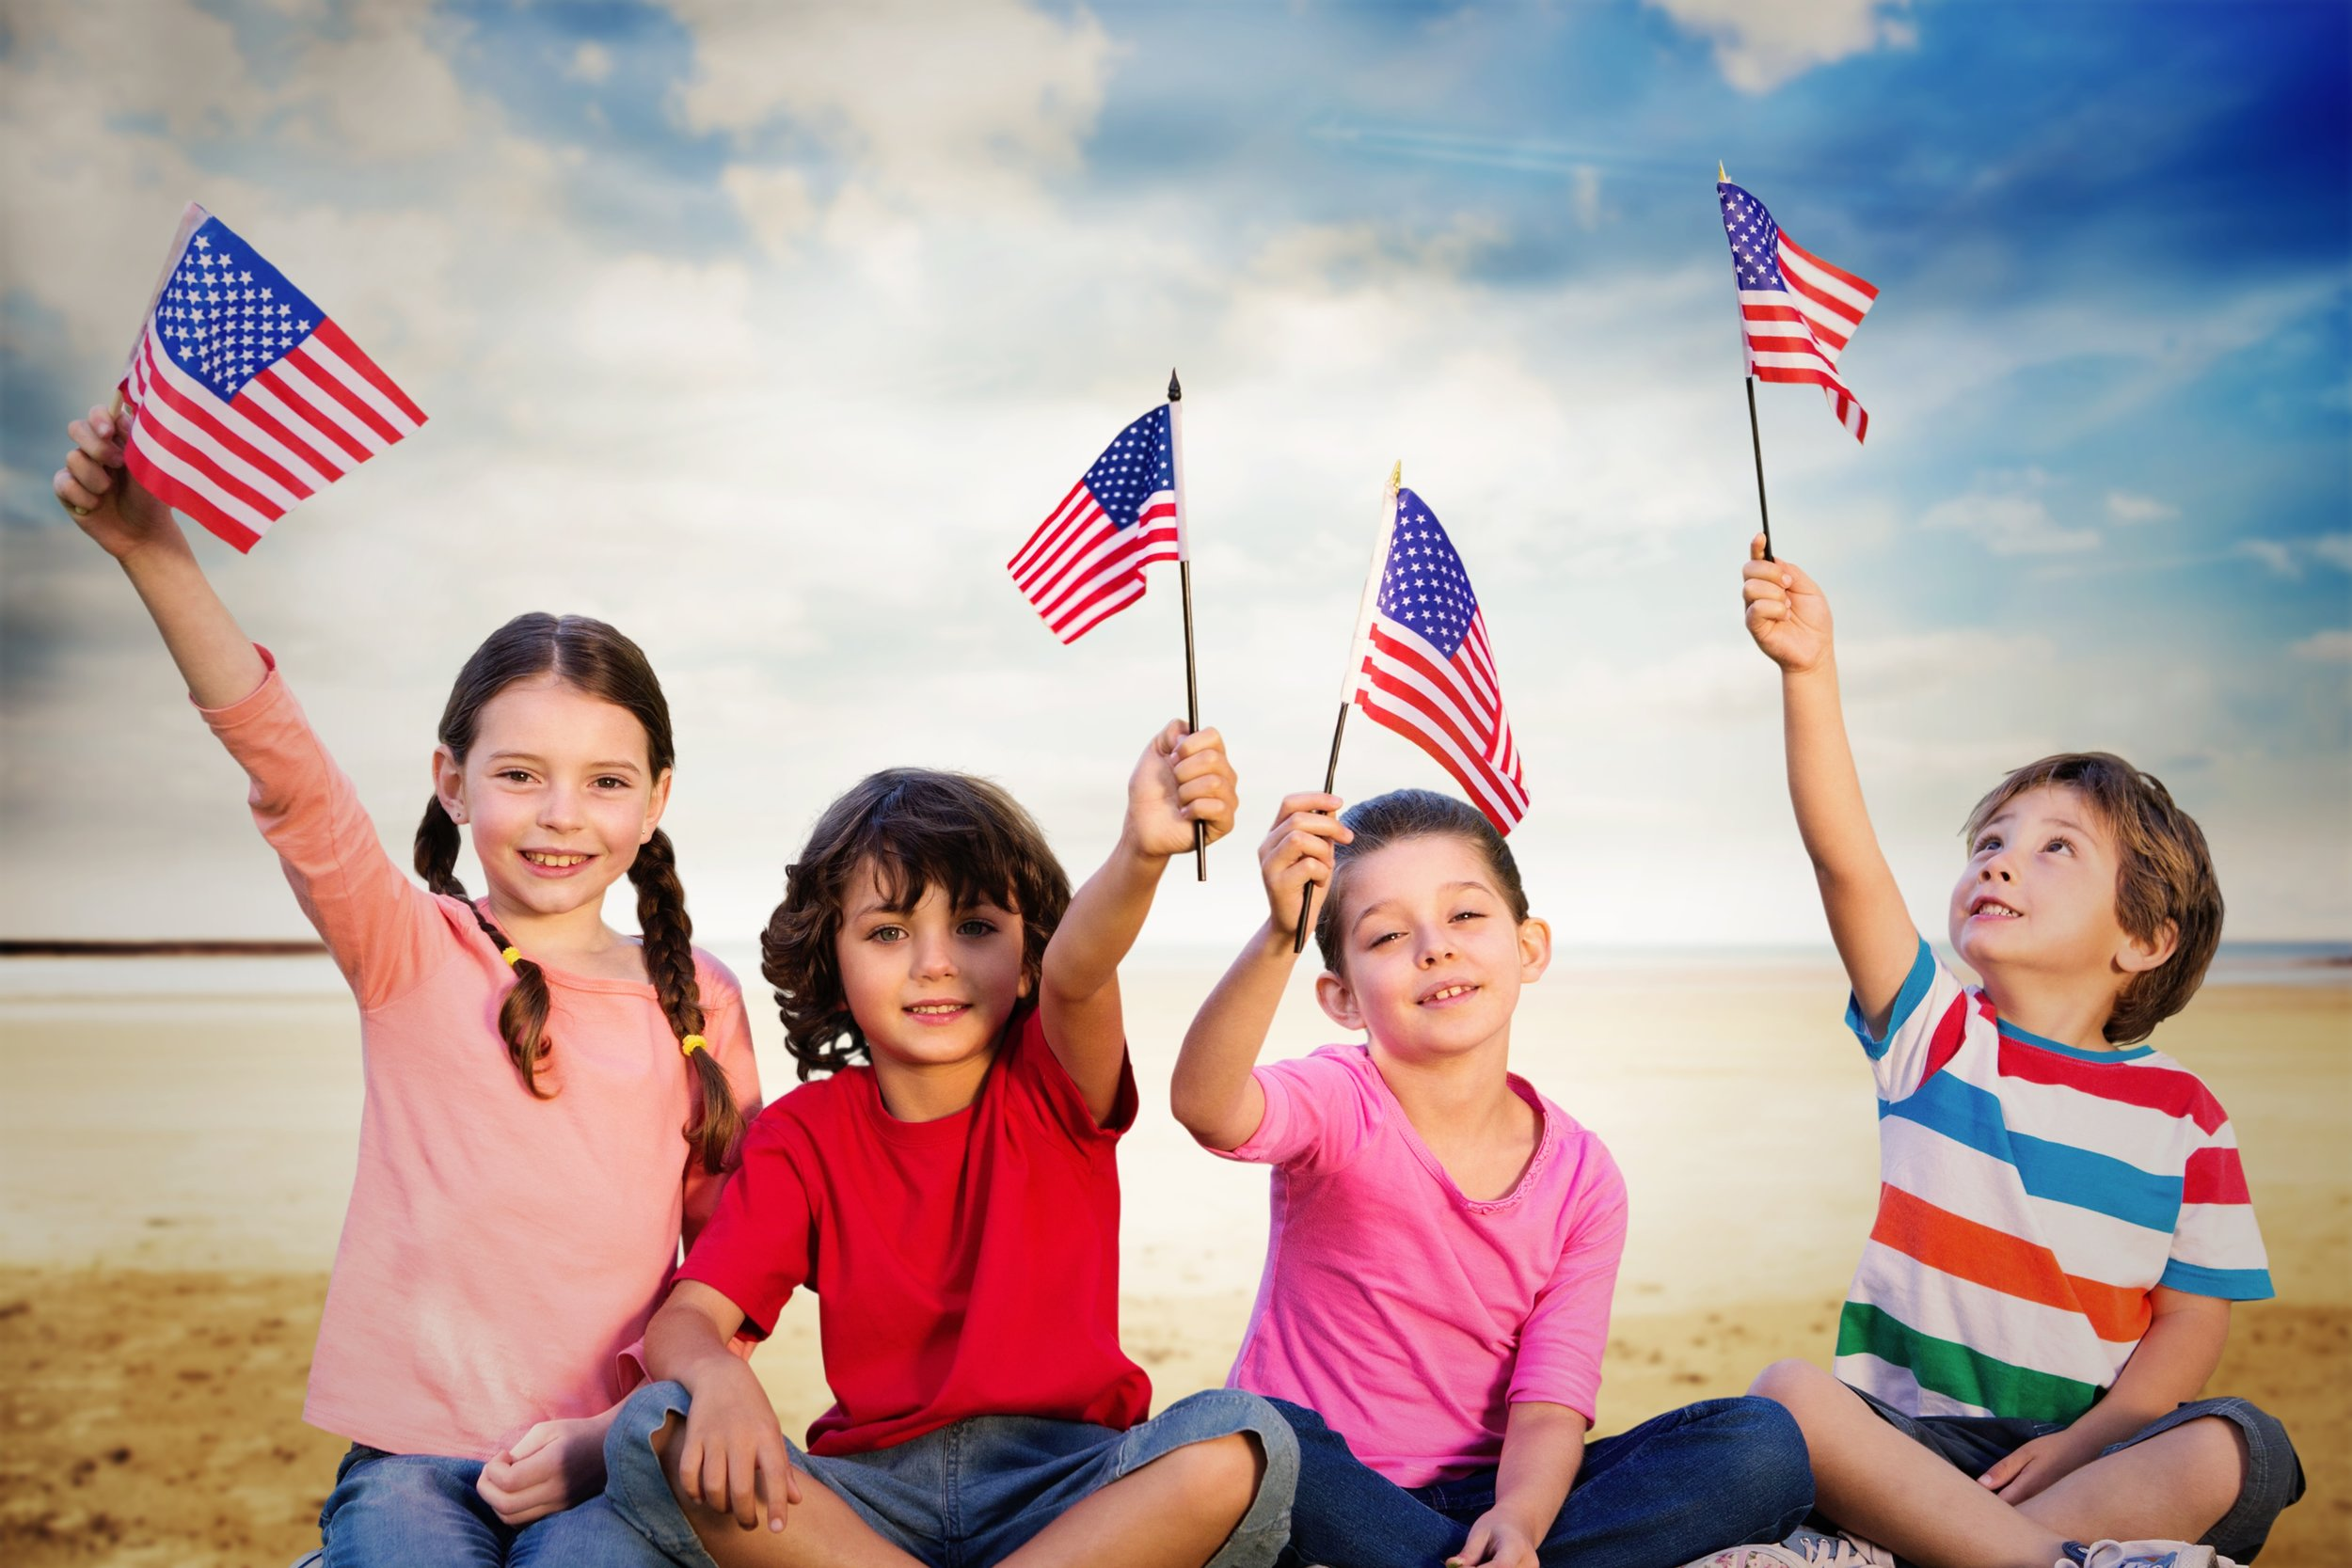 Stars And stripes - July 1st - July 5thGod Bless America….we are celebrating Independence Day! During this adventure we will be learning about Independence Day through art and play. Come join us for the fun activities we have planned!